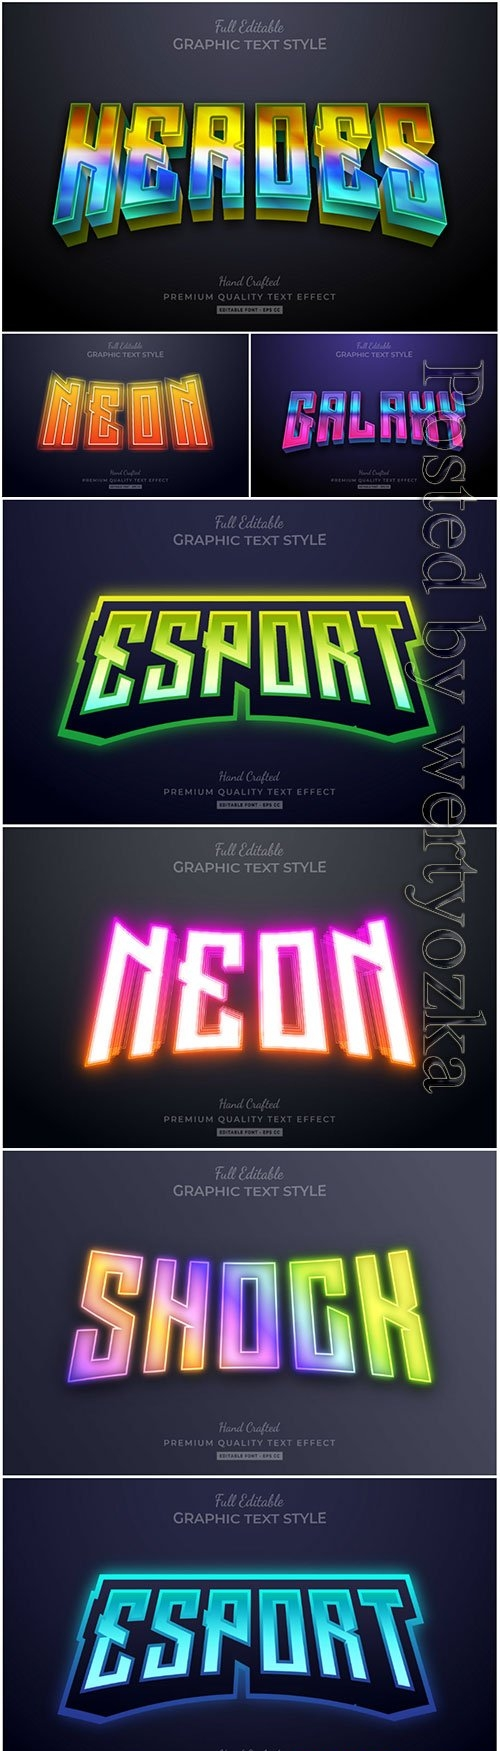 3d editable text style effect vector vol 21